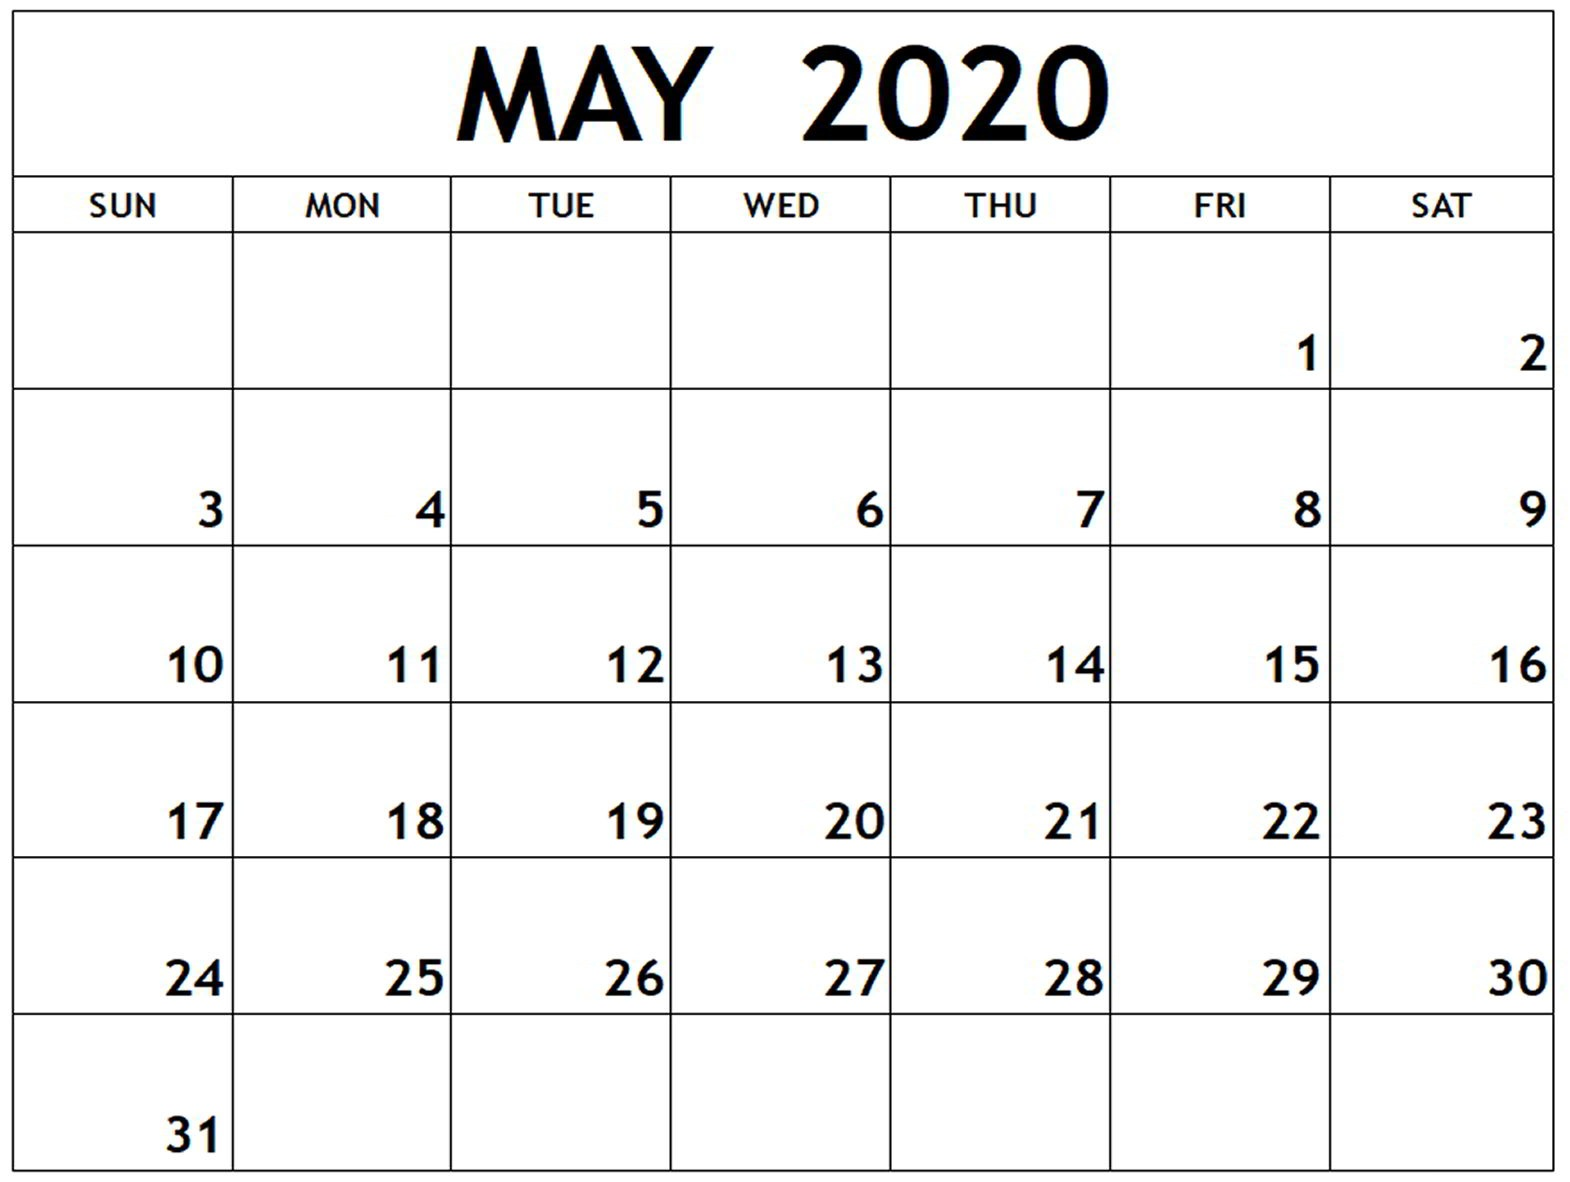 May 2020 Calendar Template For Kids